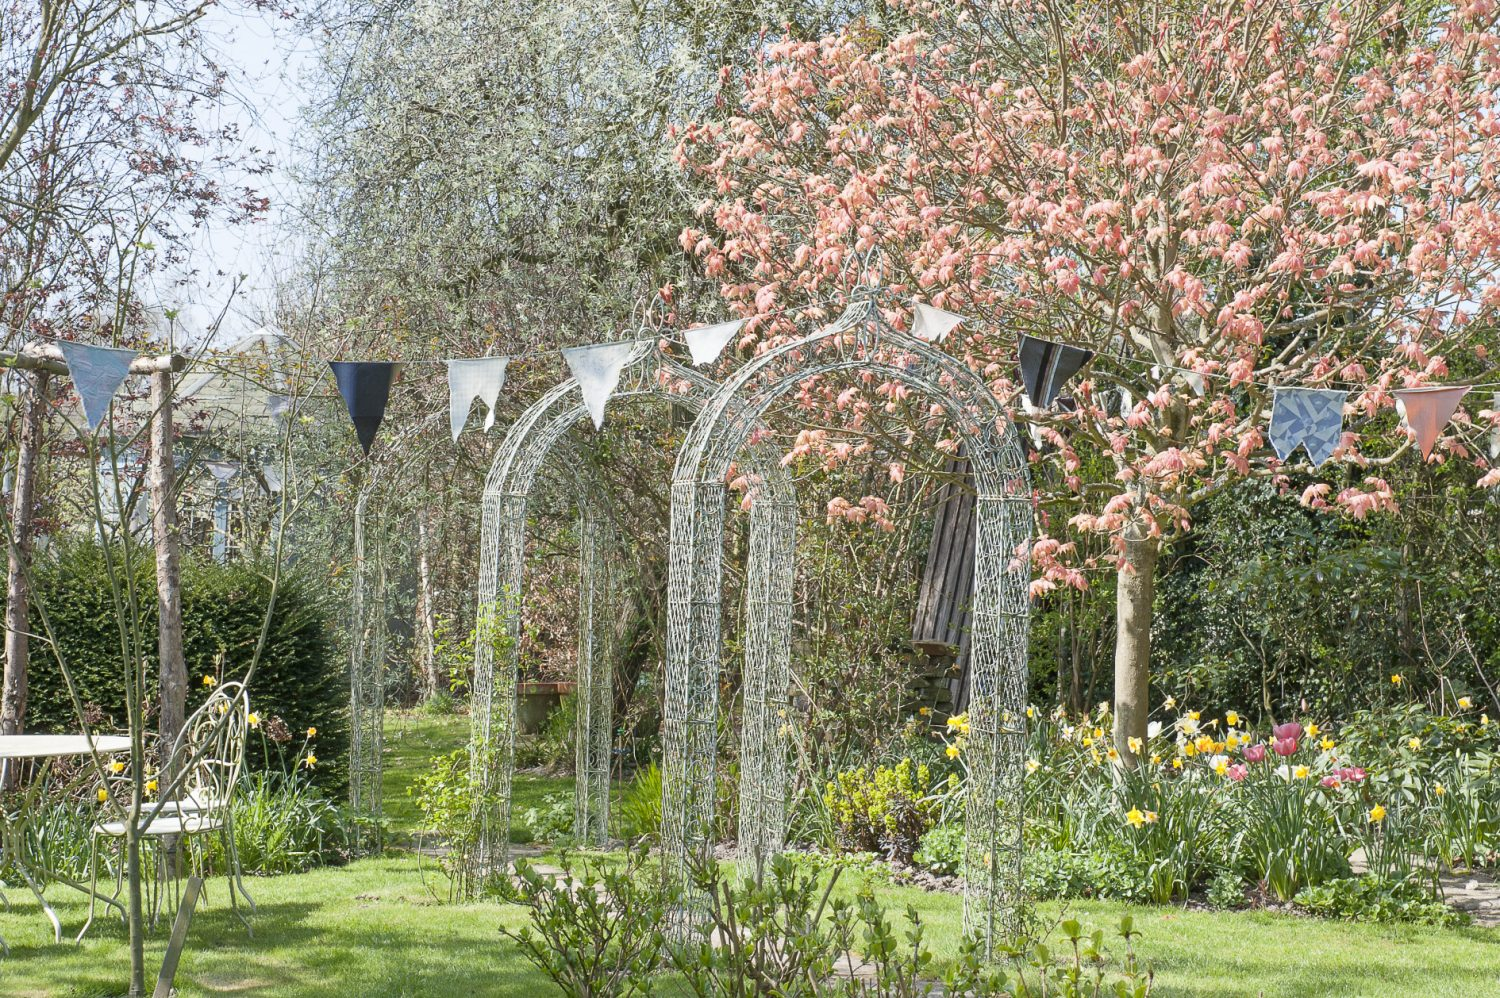 The pretty cottage garden, strung with reams of fabric bunting, has burst into life with an explosion of greens, pinks, reds and yellows